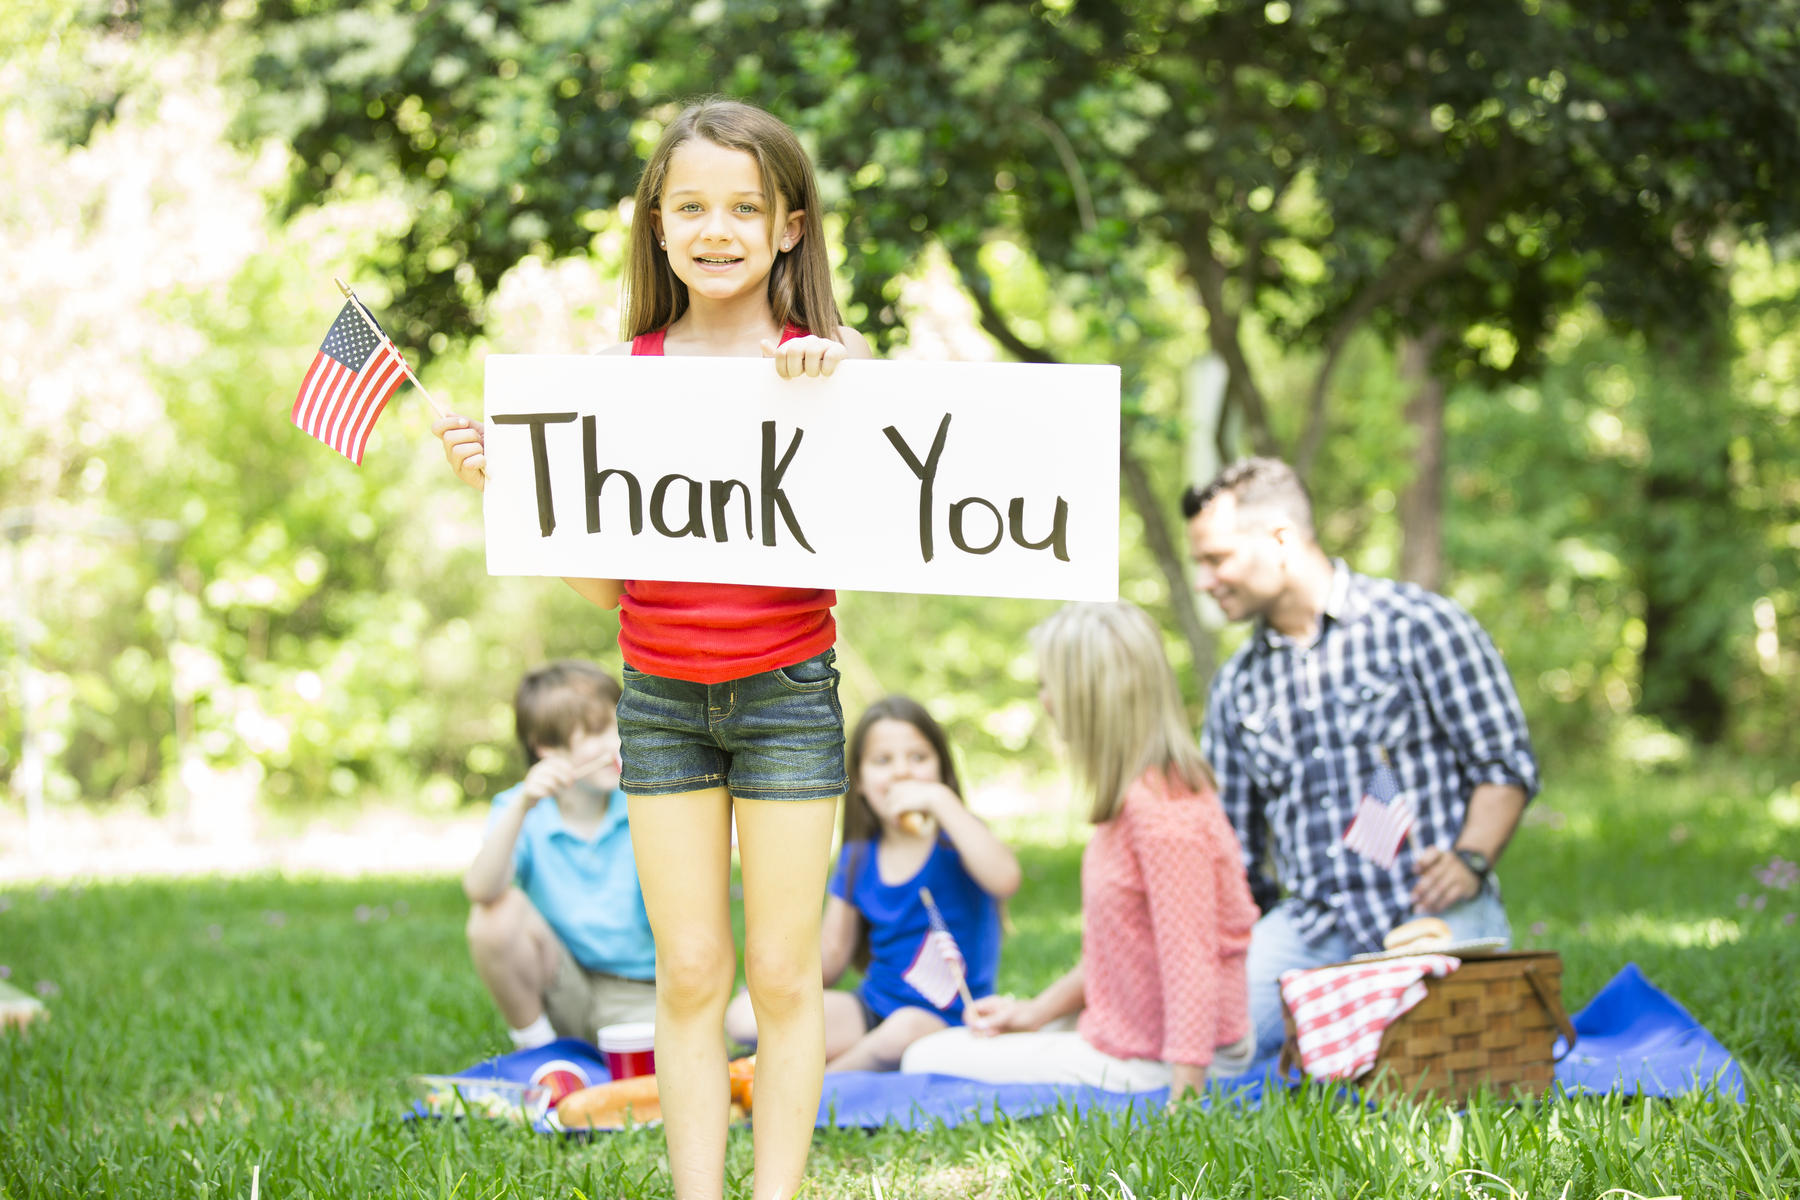 Child holds 'Thank You' sign with American flag for Memorial Day